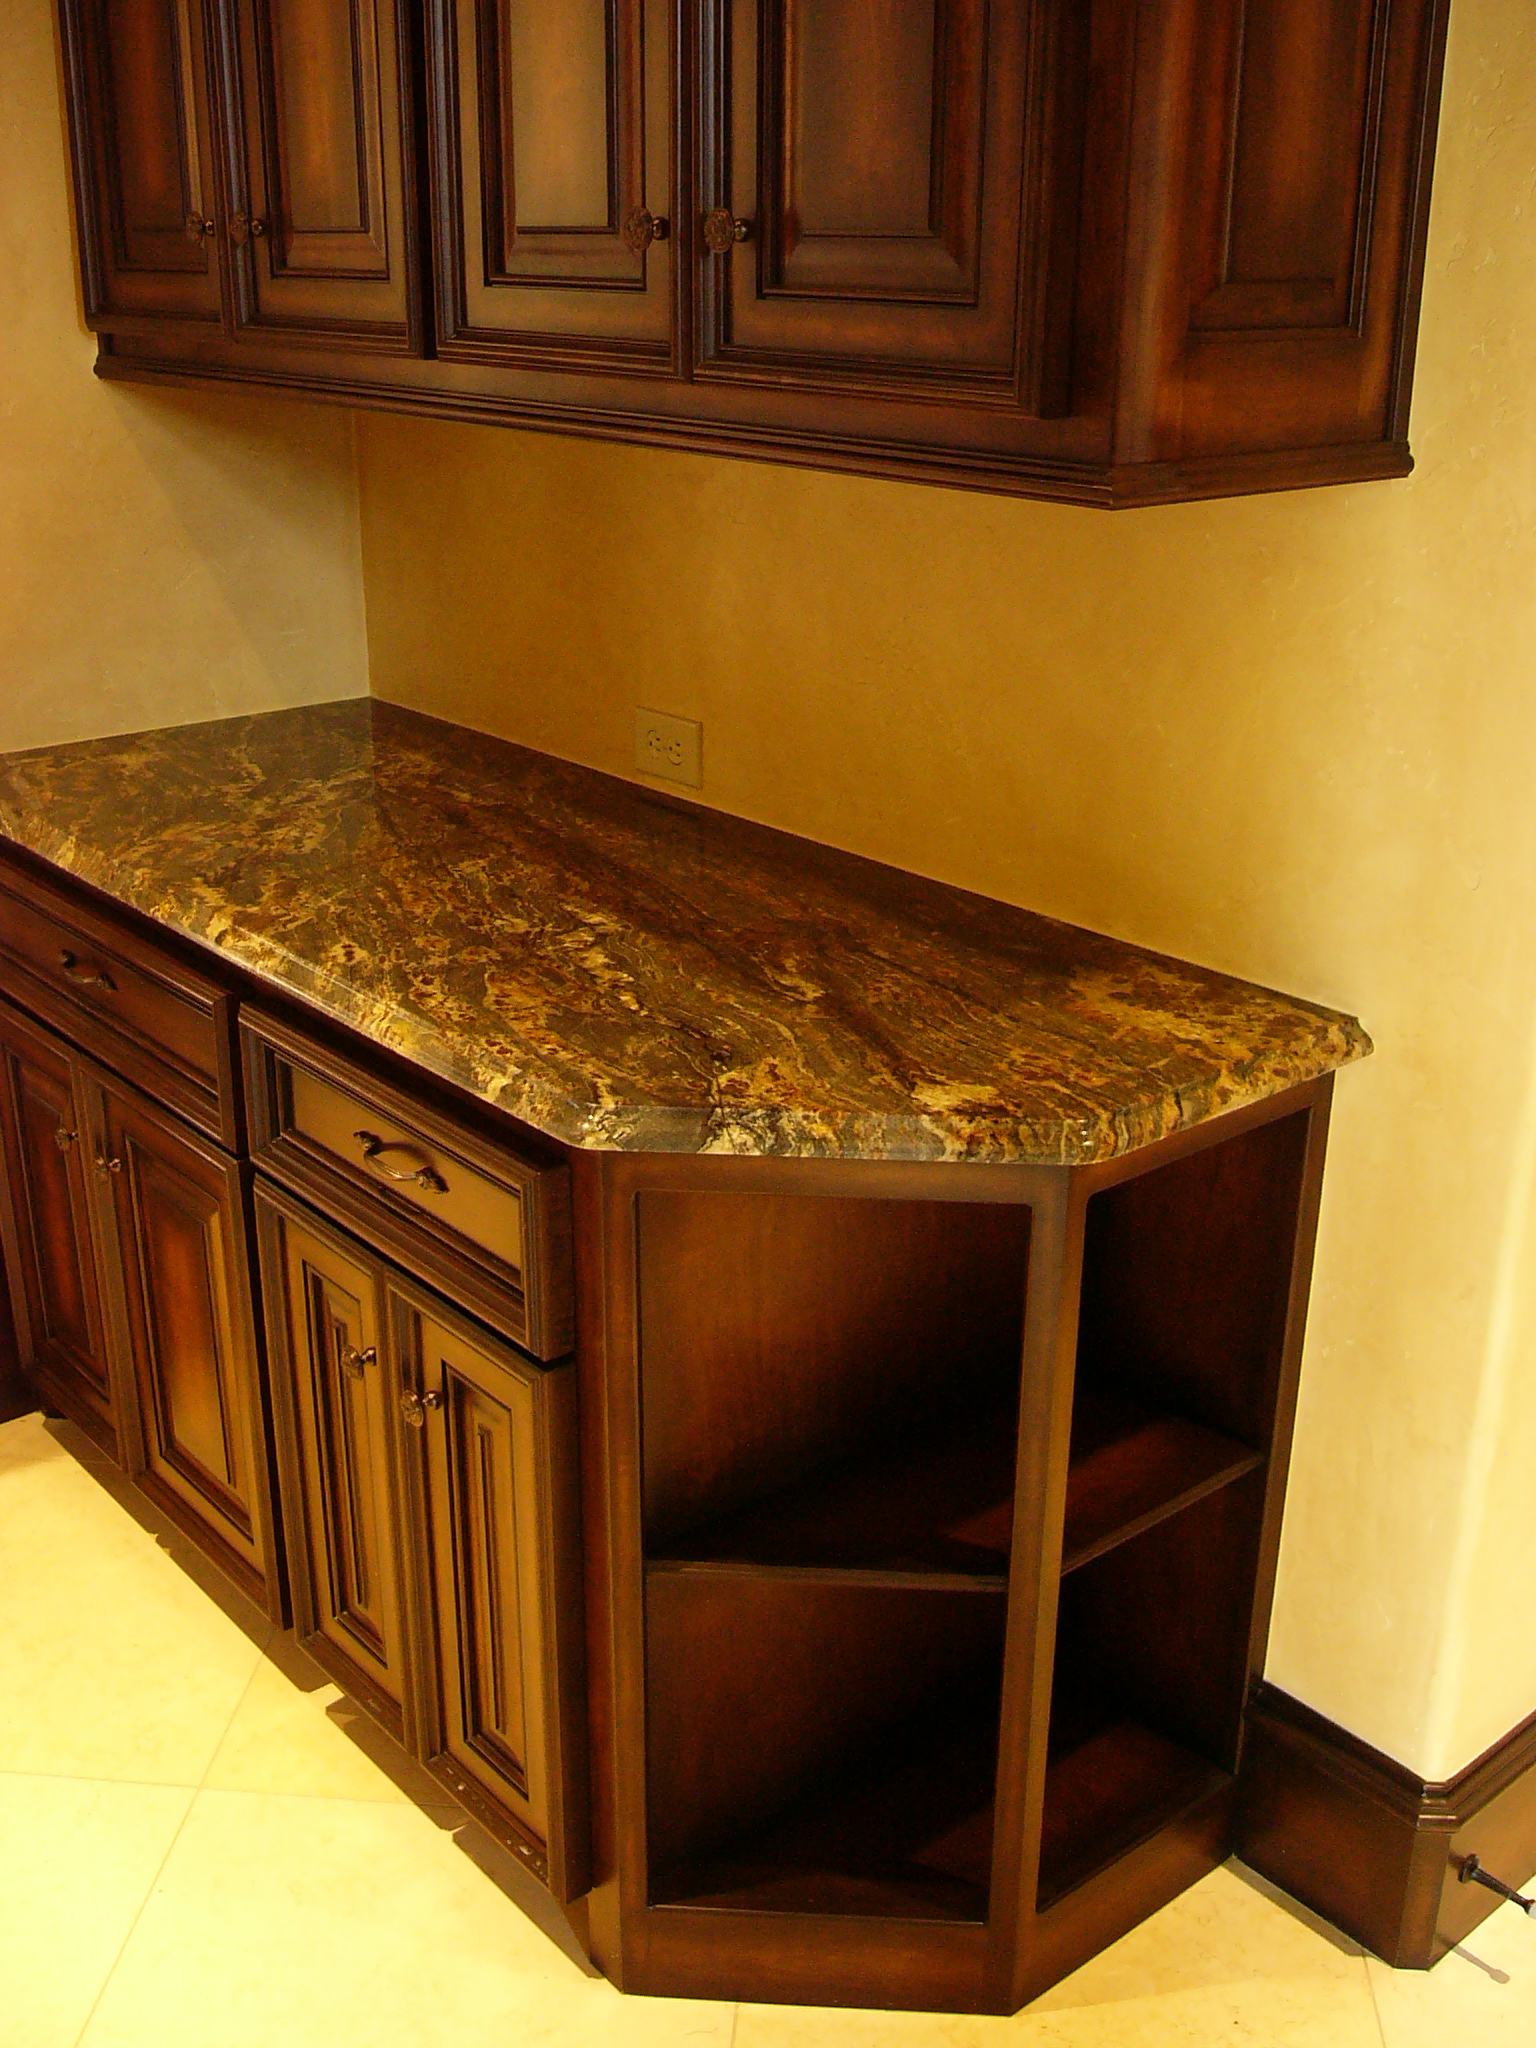 countertops cabinets ice granite and farm sink a custom with affordable countertop white